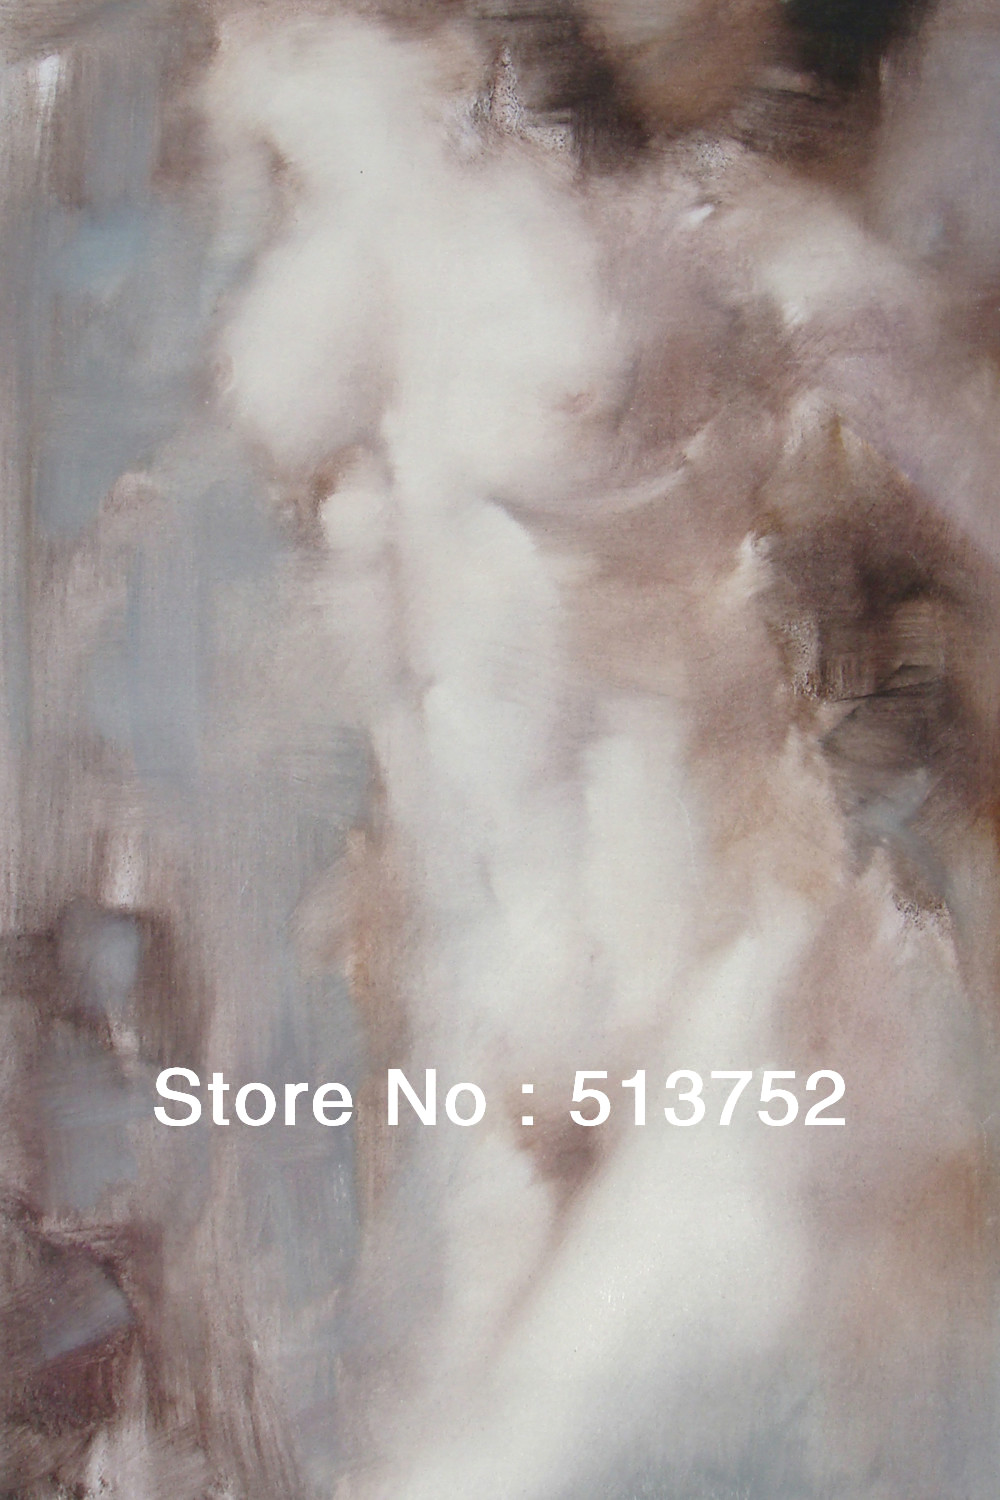 Nude Woman Sex Body Couple Paintings Love On Canvas Modern Chinese Decorative Art Painting Art Canvas Arts And Crafts Fanpainting Hanging Aliexpress